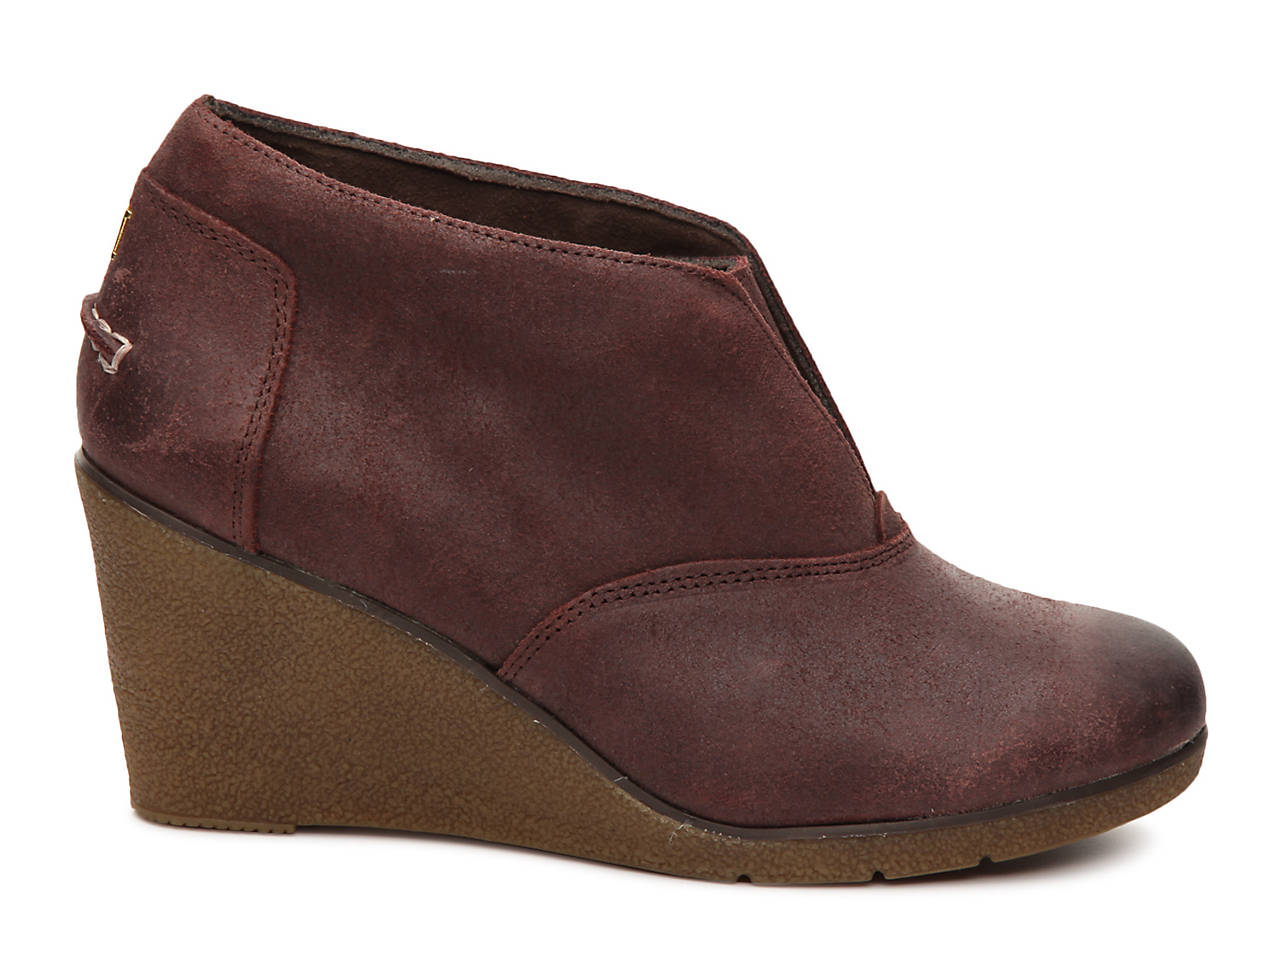 ace46f3c911 Sperry Top-Sider Harlow Brook Wedge Bootie Women s Shoes